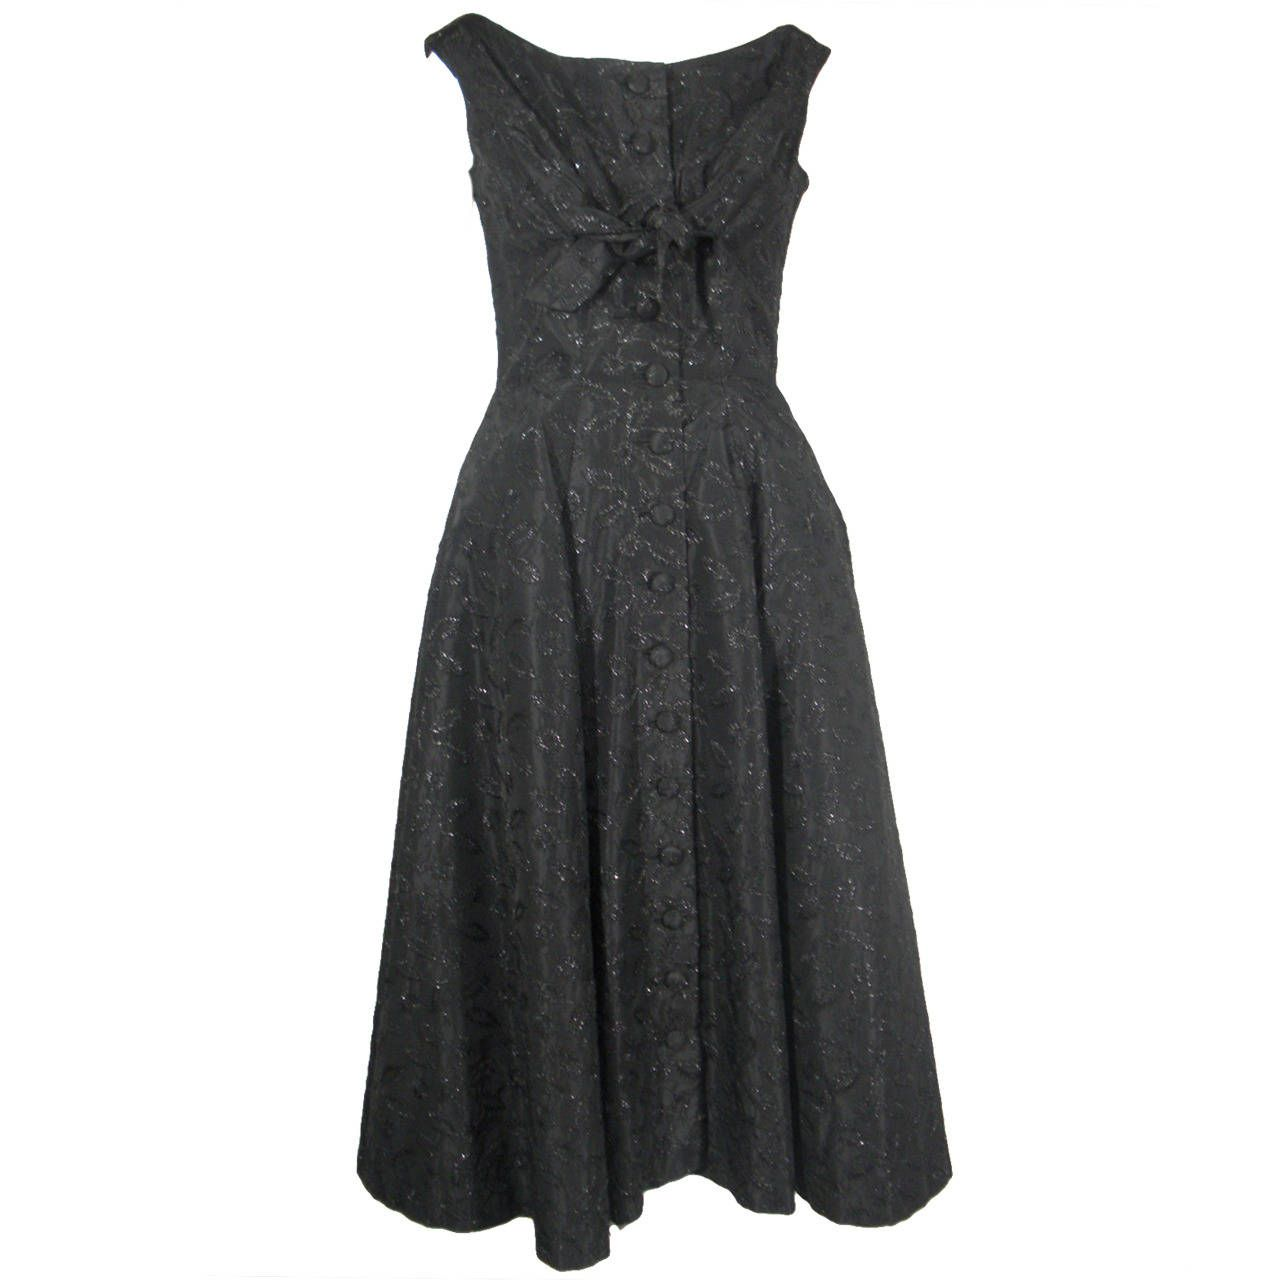 1950s Suzy Perette Black Button Front Dress With Embroidered Flowers Evening Dresses Vintage Vintage Black Cocktail Dress Black Cocktail Dress [ 1280 x 1280 Pixel ]